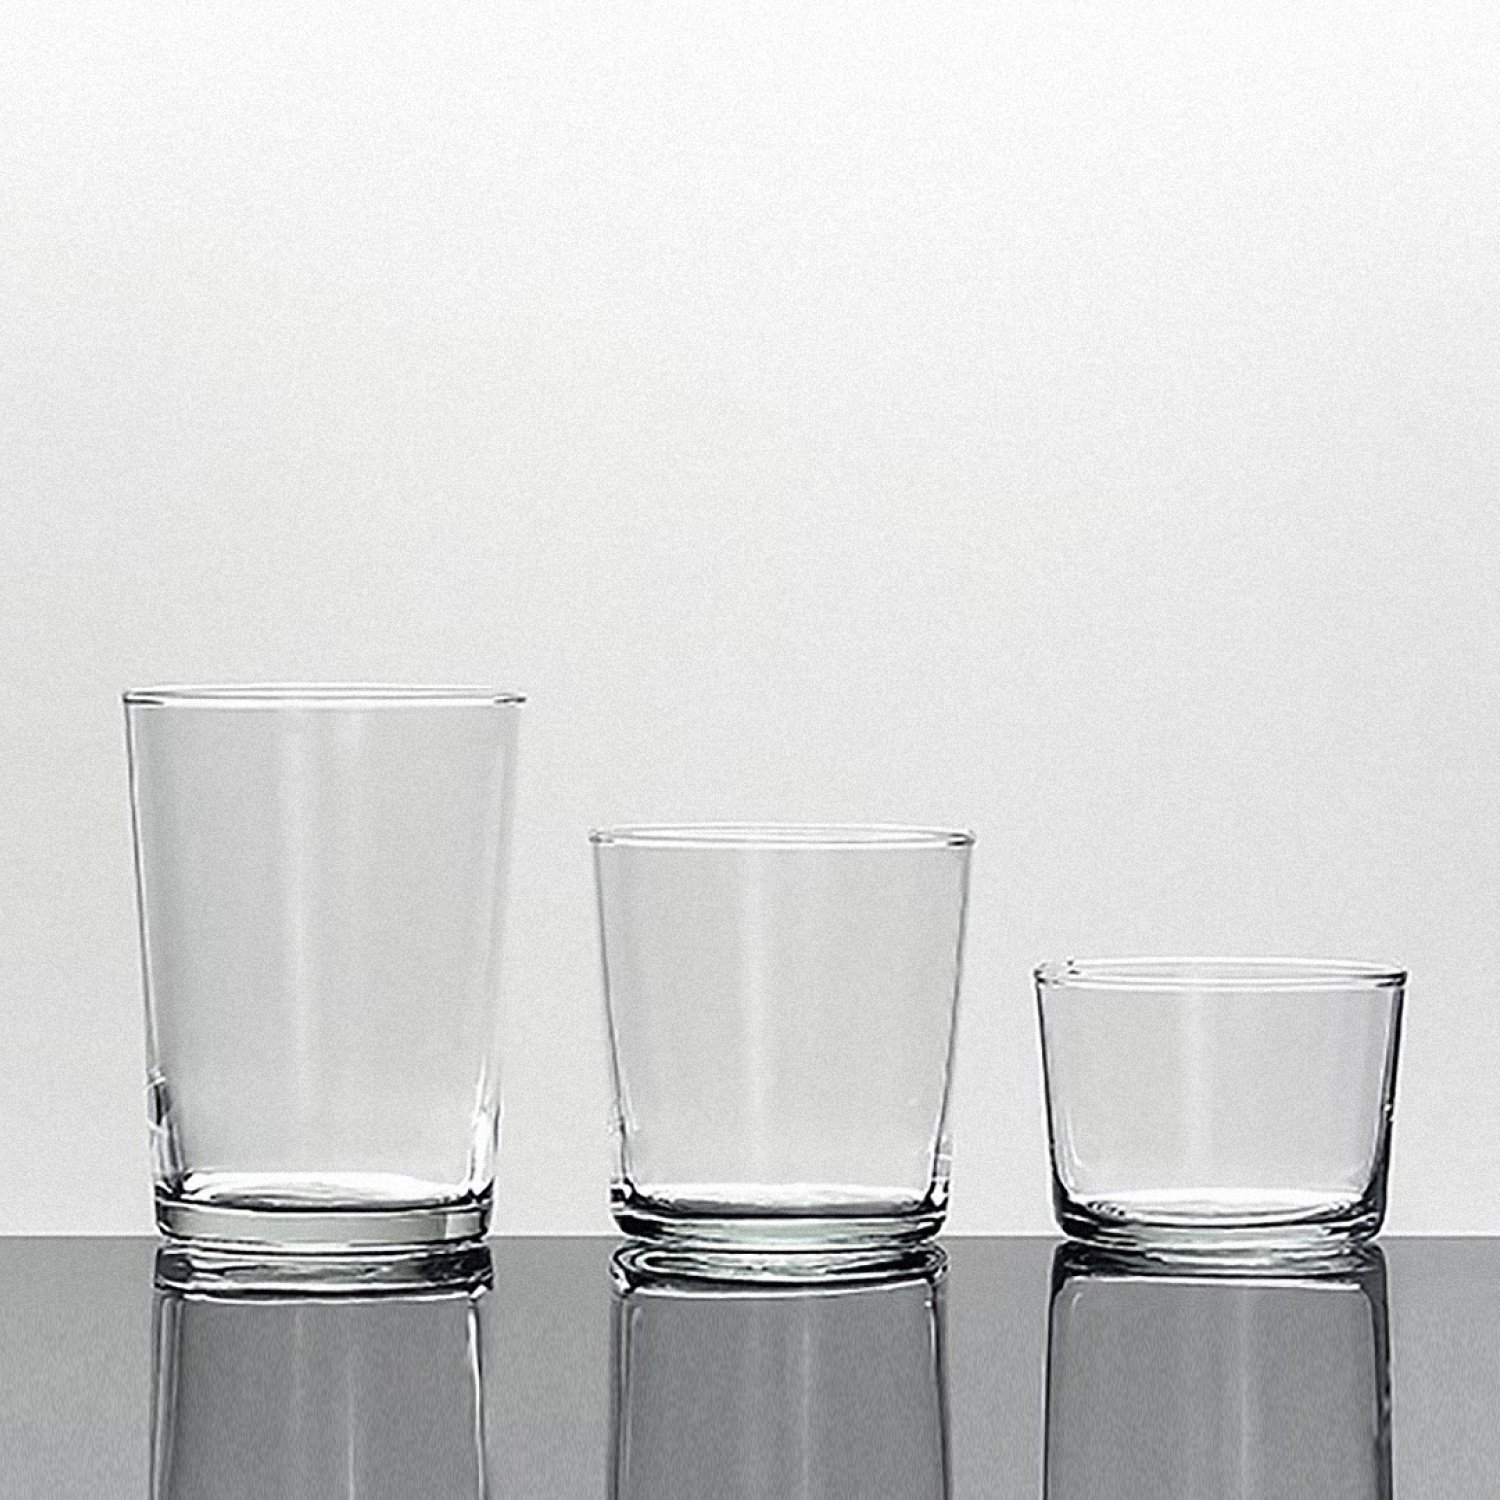 Minimal clear glass tumbler set - 25 Amazing Finds Under $25 & Fun Quotes to Make You Smile!